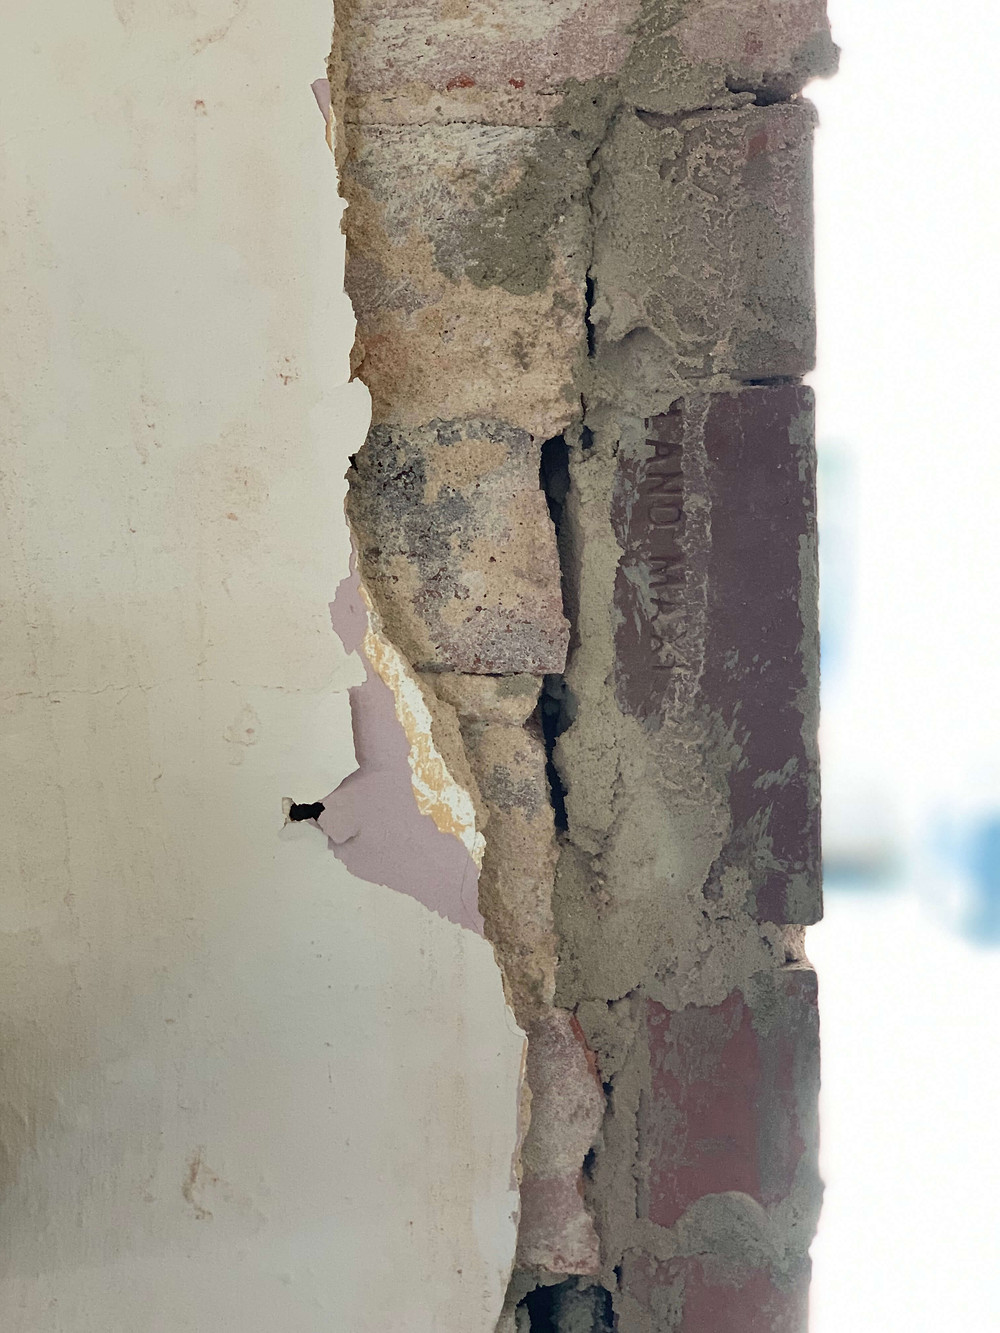 Area of interest lead in paint testing